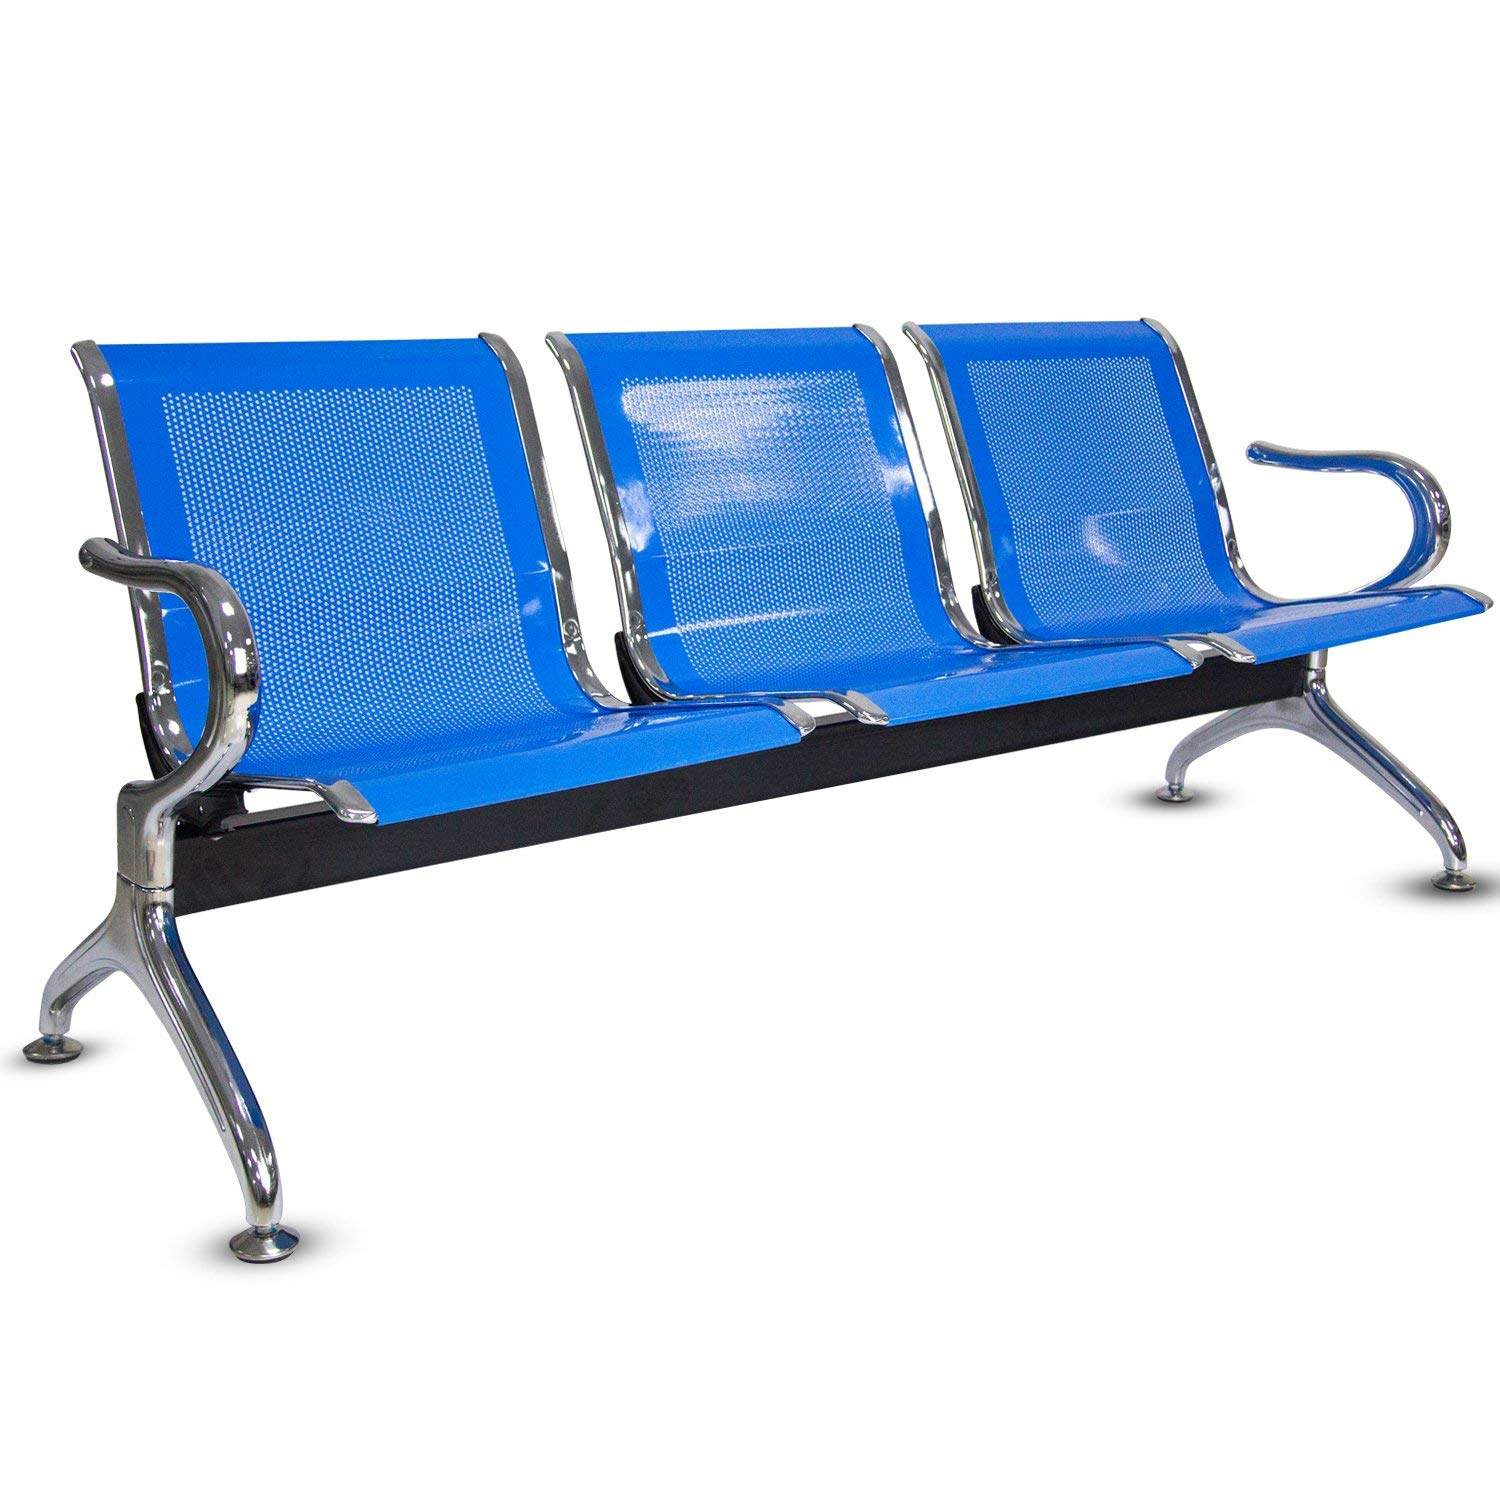 Airport Office Reception Waiting Area Bench Guest Chair Room Garden Salon Barber Bench (Blue, 3-Seat)